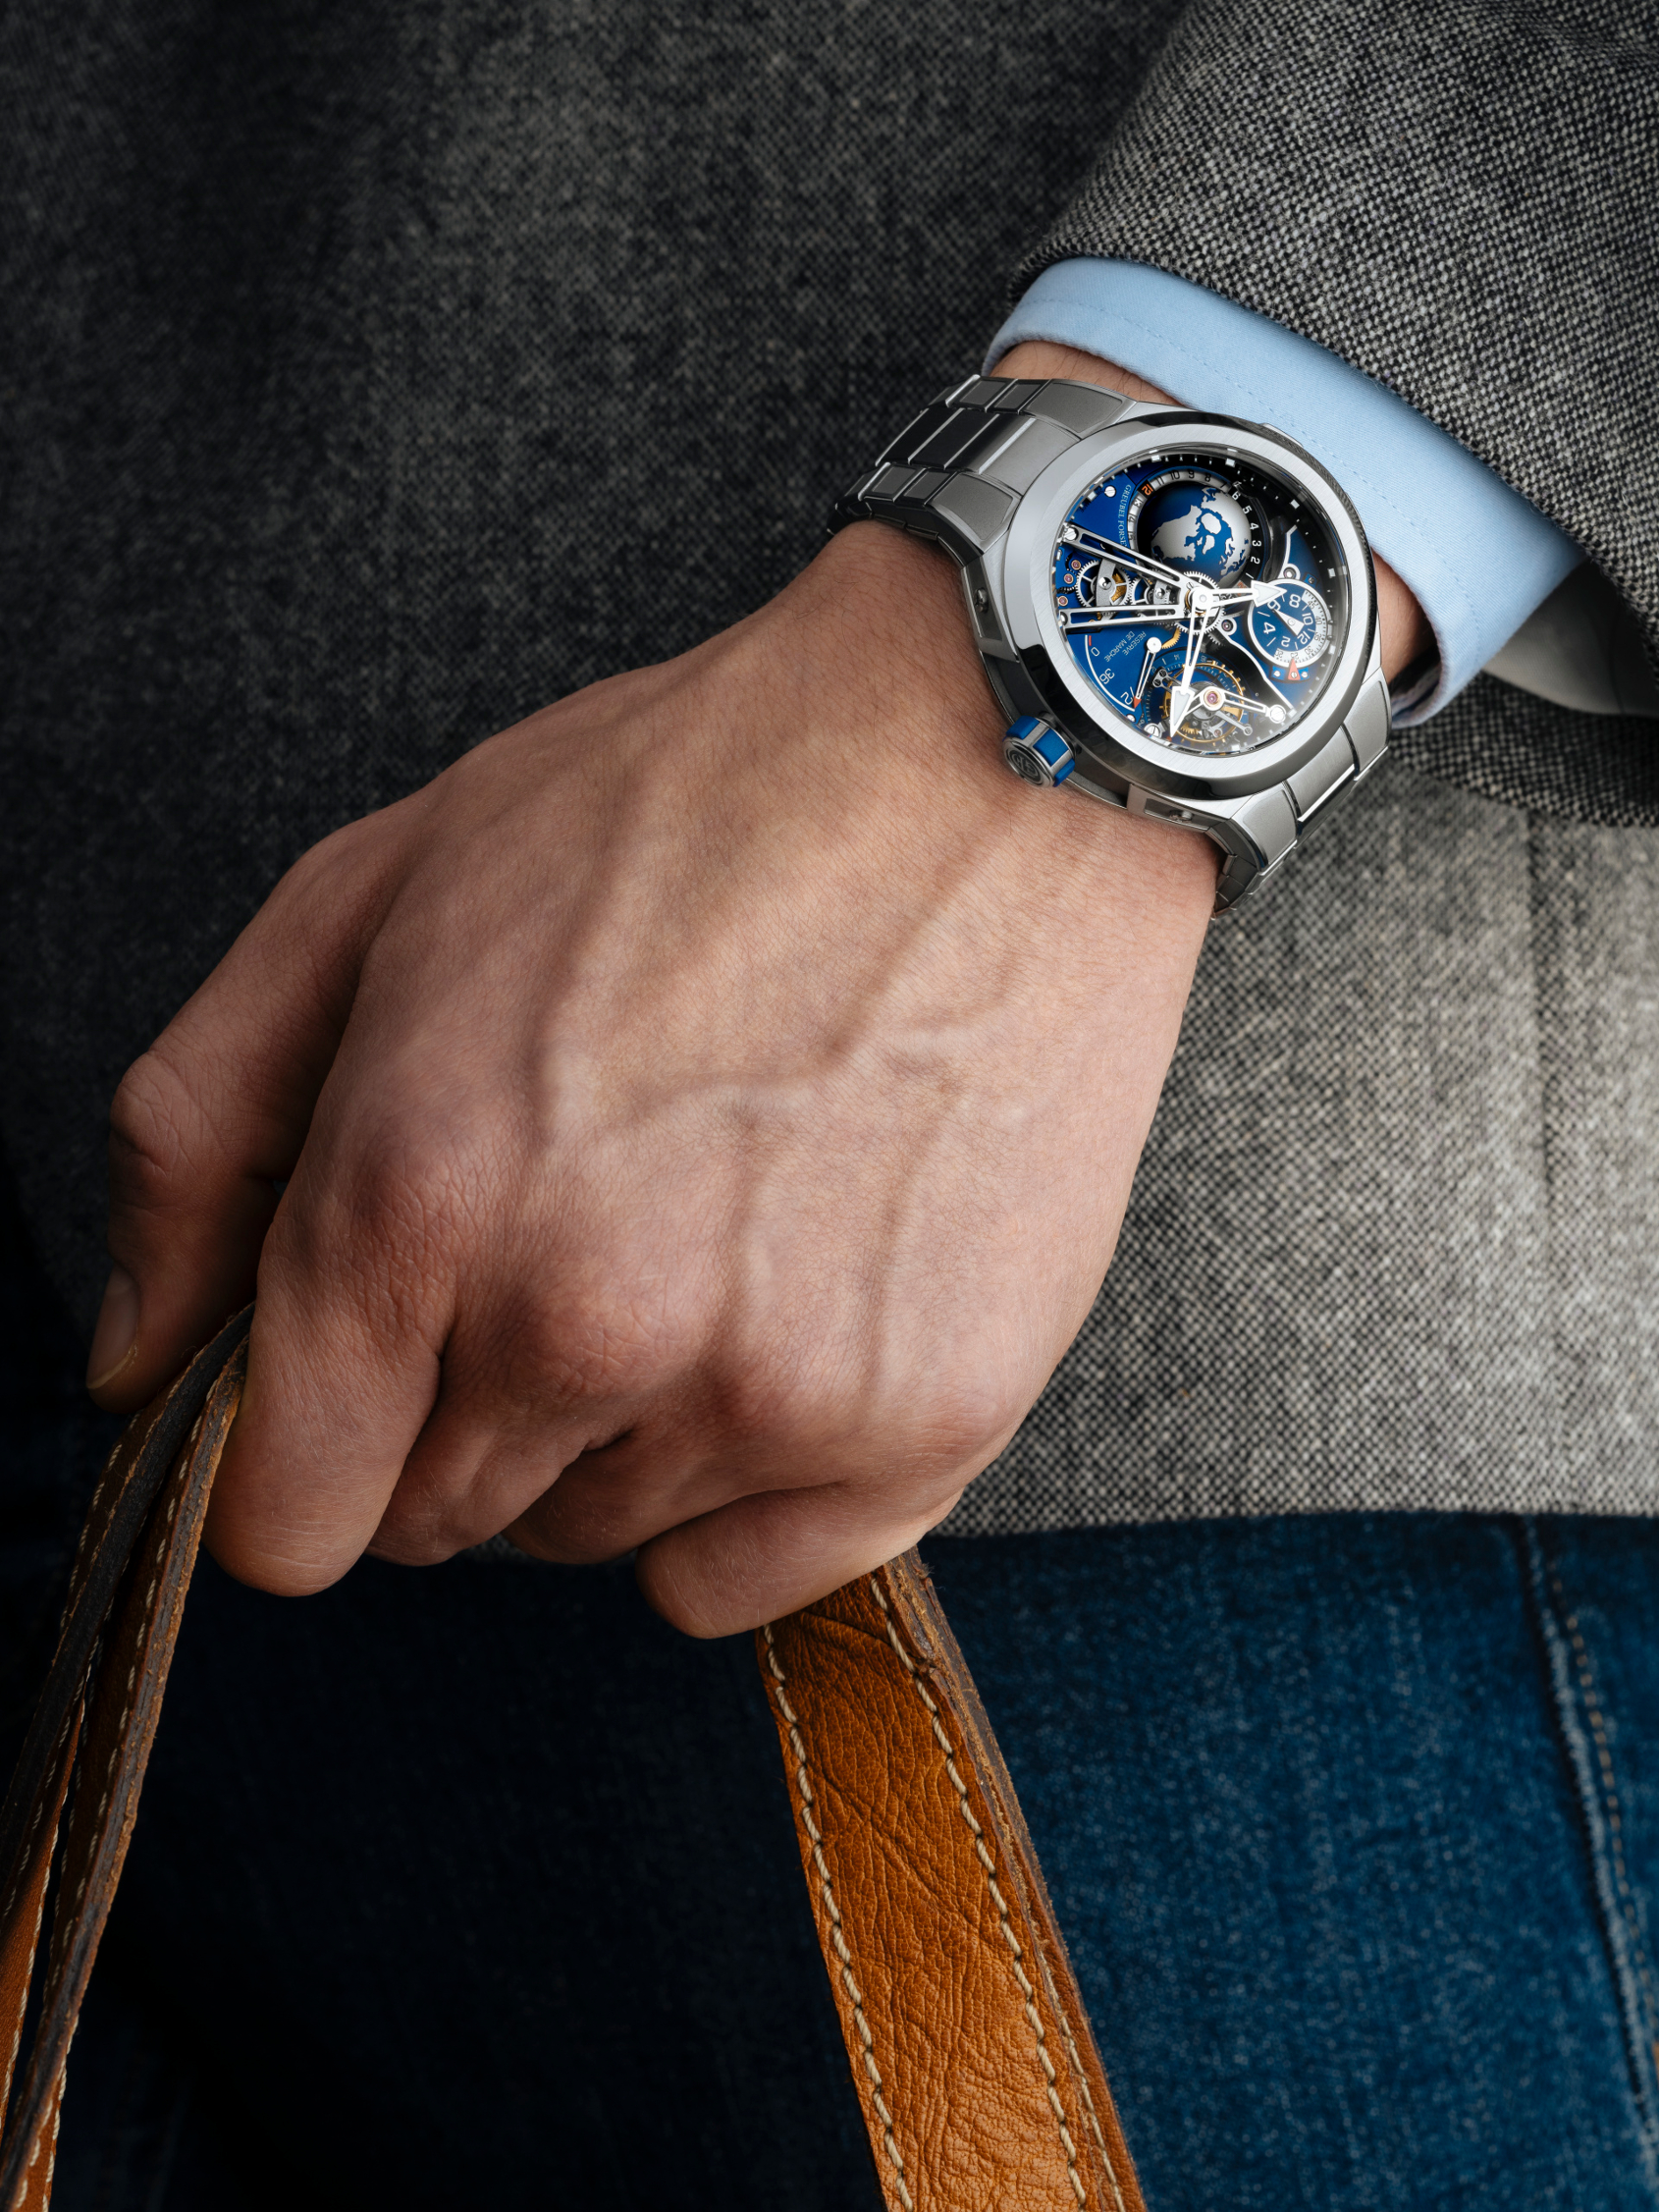 The Greubel Forsey GMT Sport shows what a sports watch costing over $500k can really do